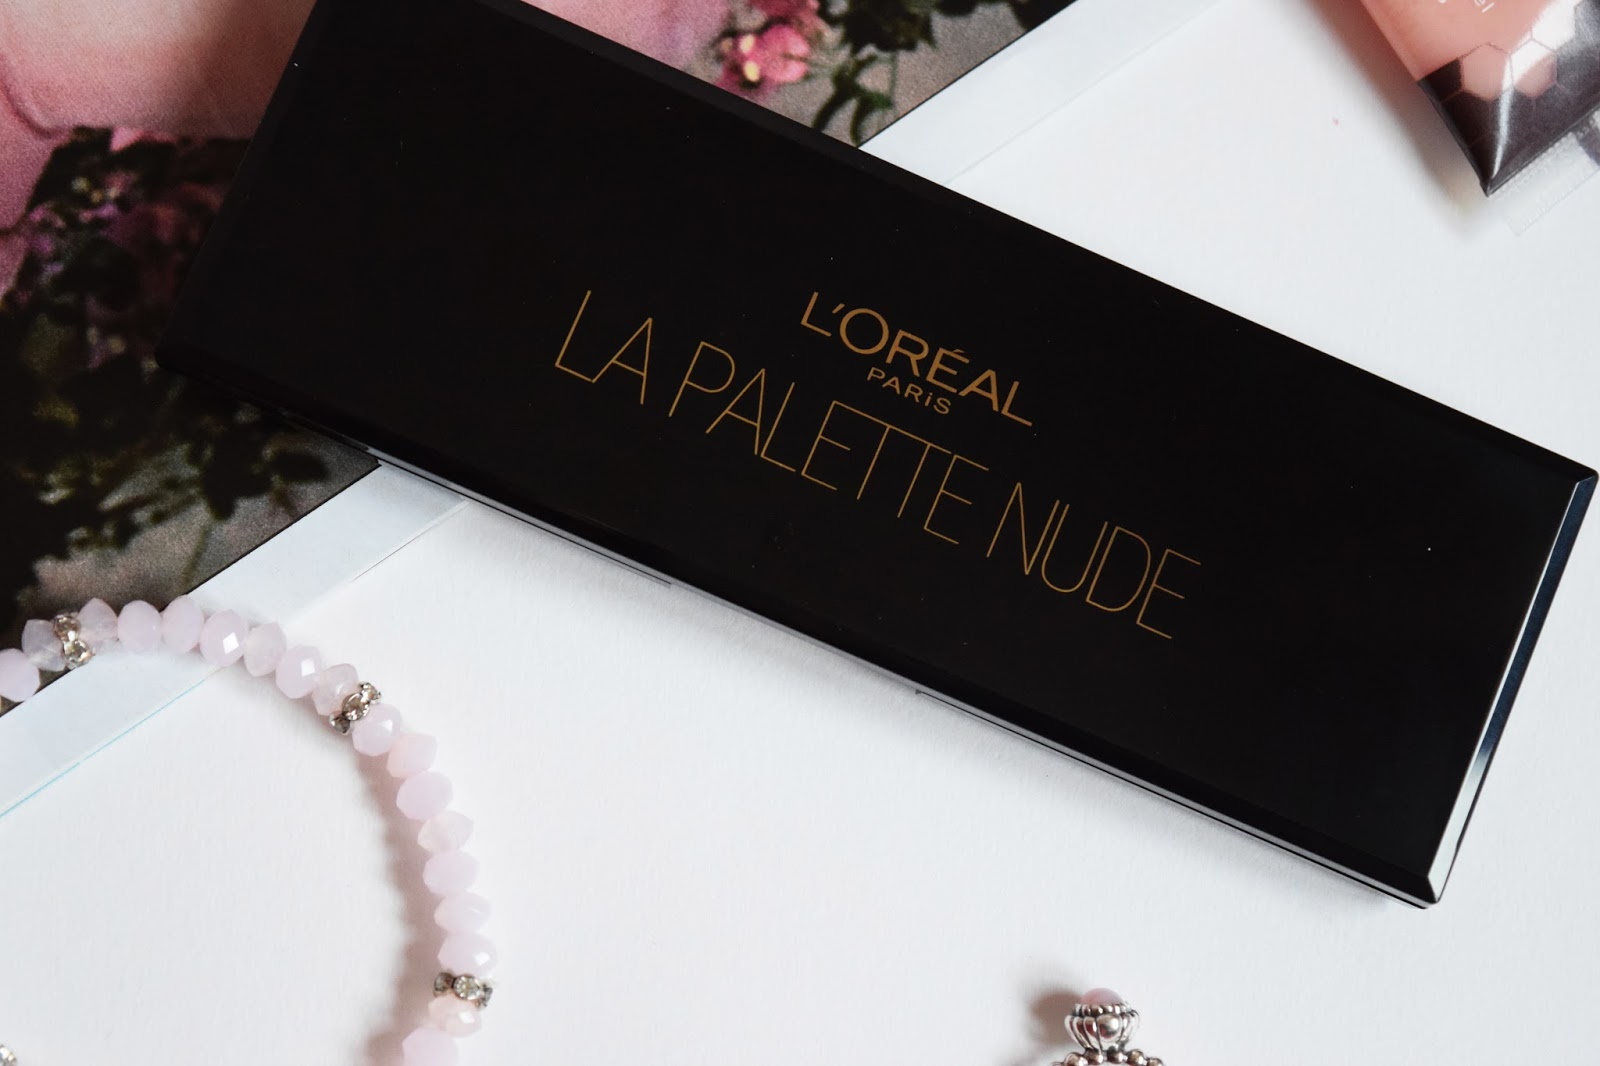 a flatlay image of the loreal paris nude rose palette on a white sheet of paper surrounded by jewellery